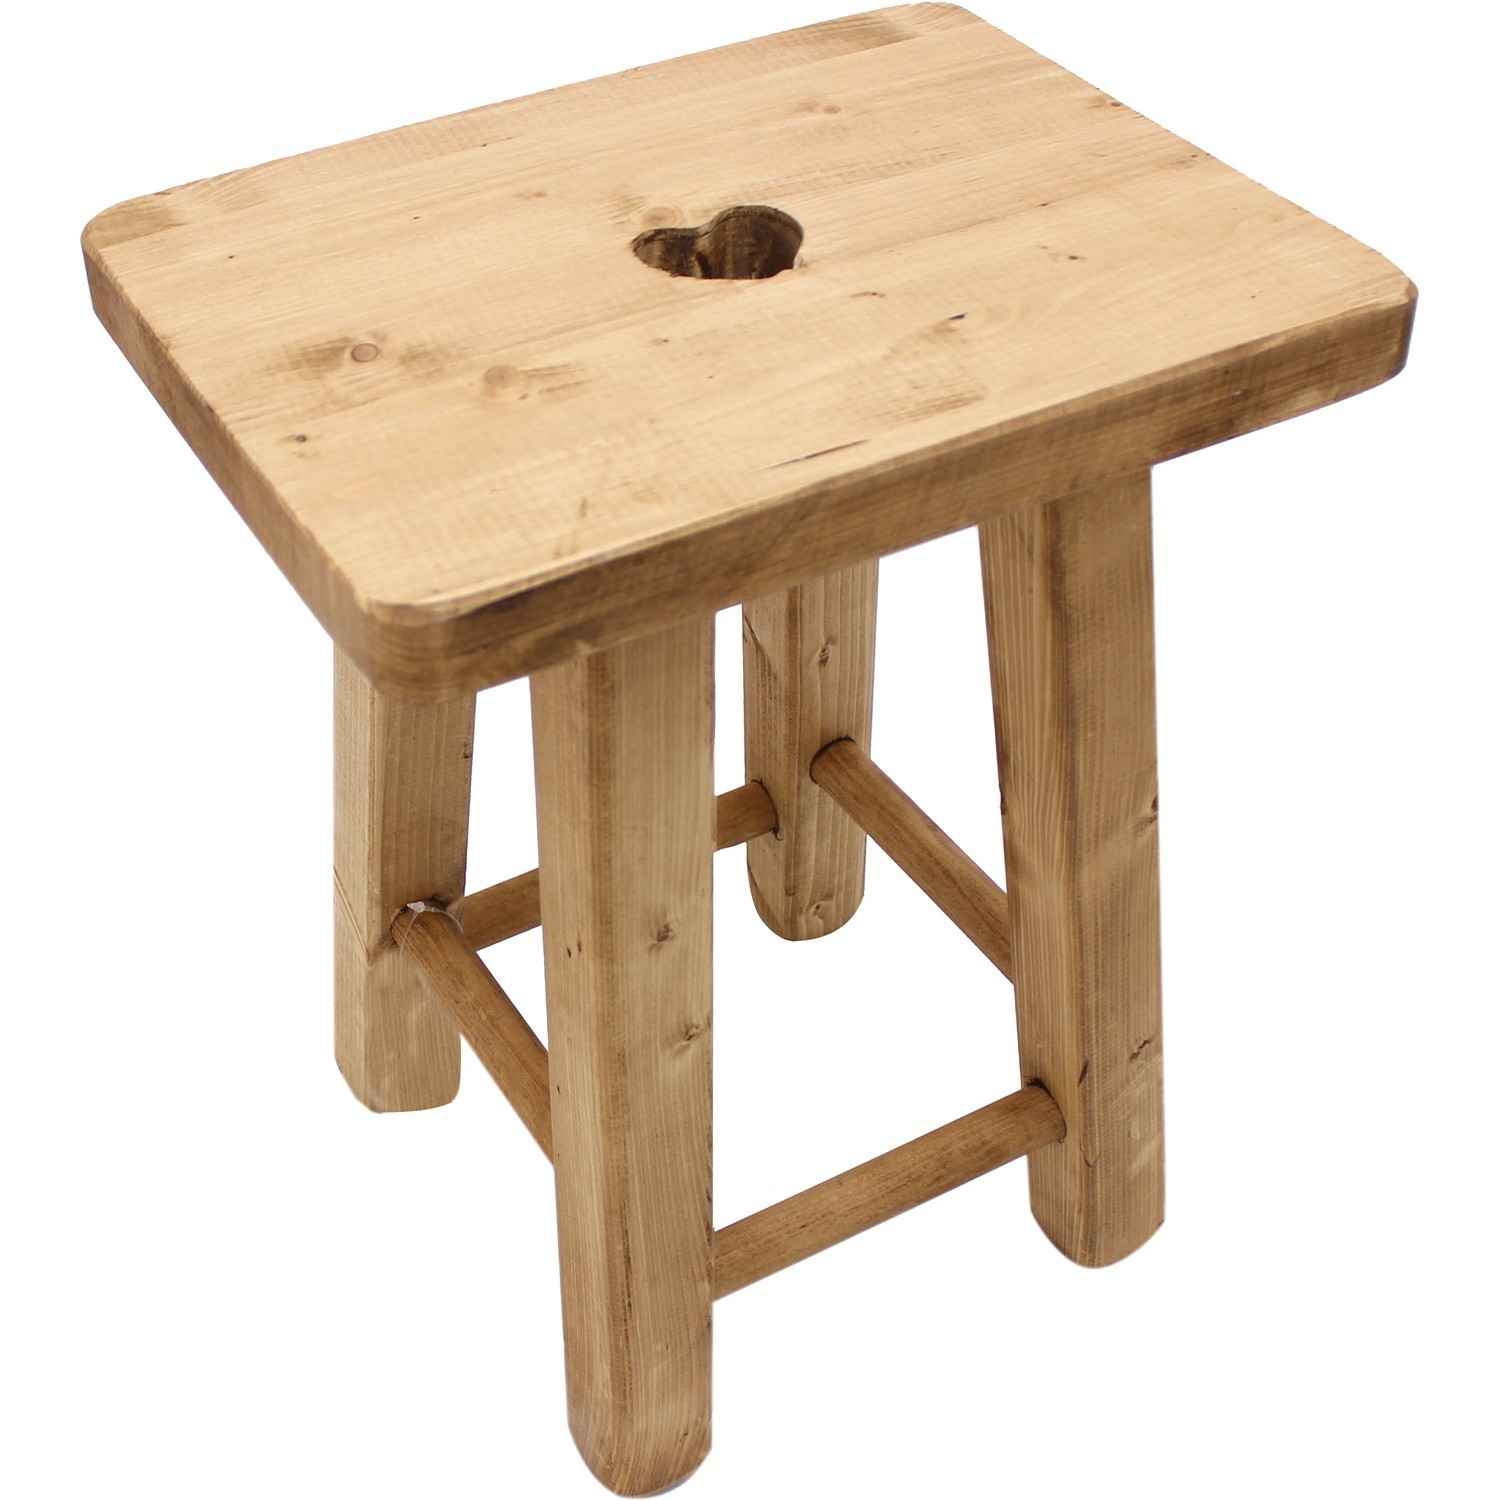 Tabourets Bois Brut Tabouret Rectangle Coeur